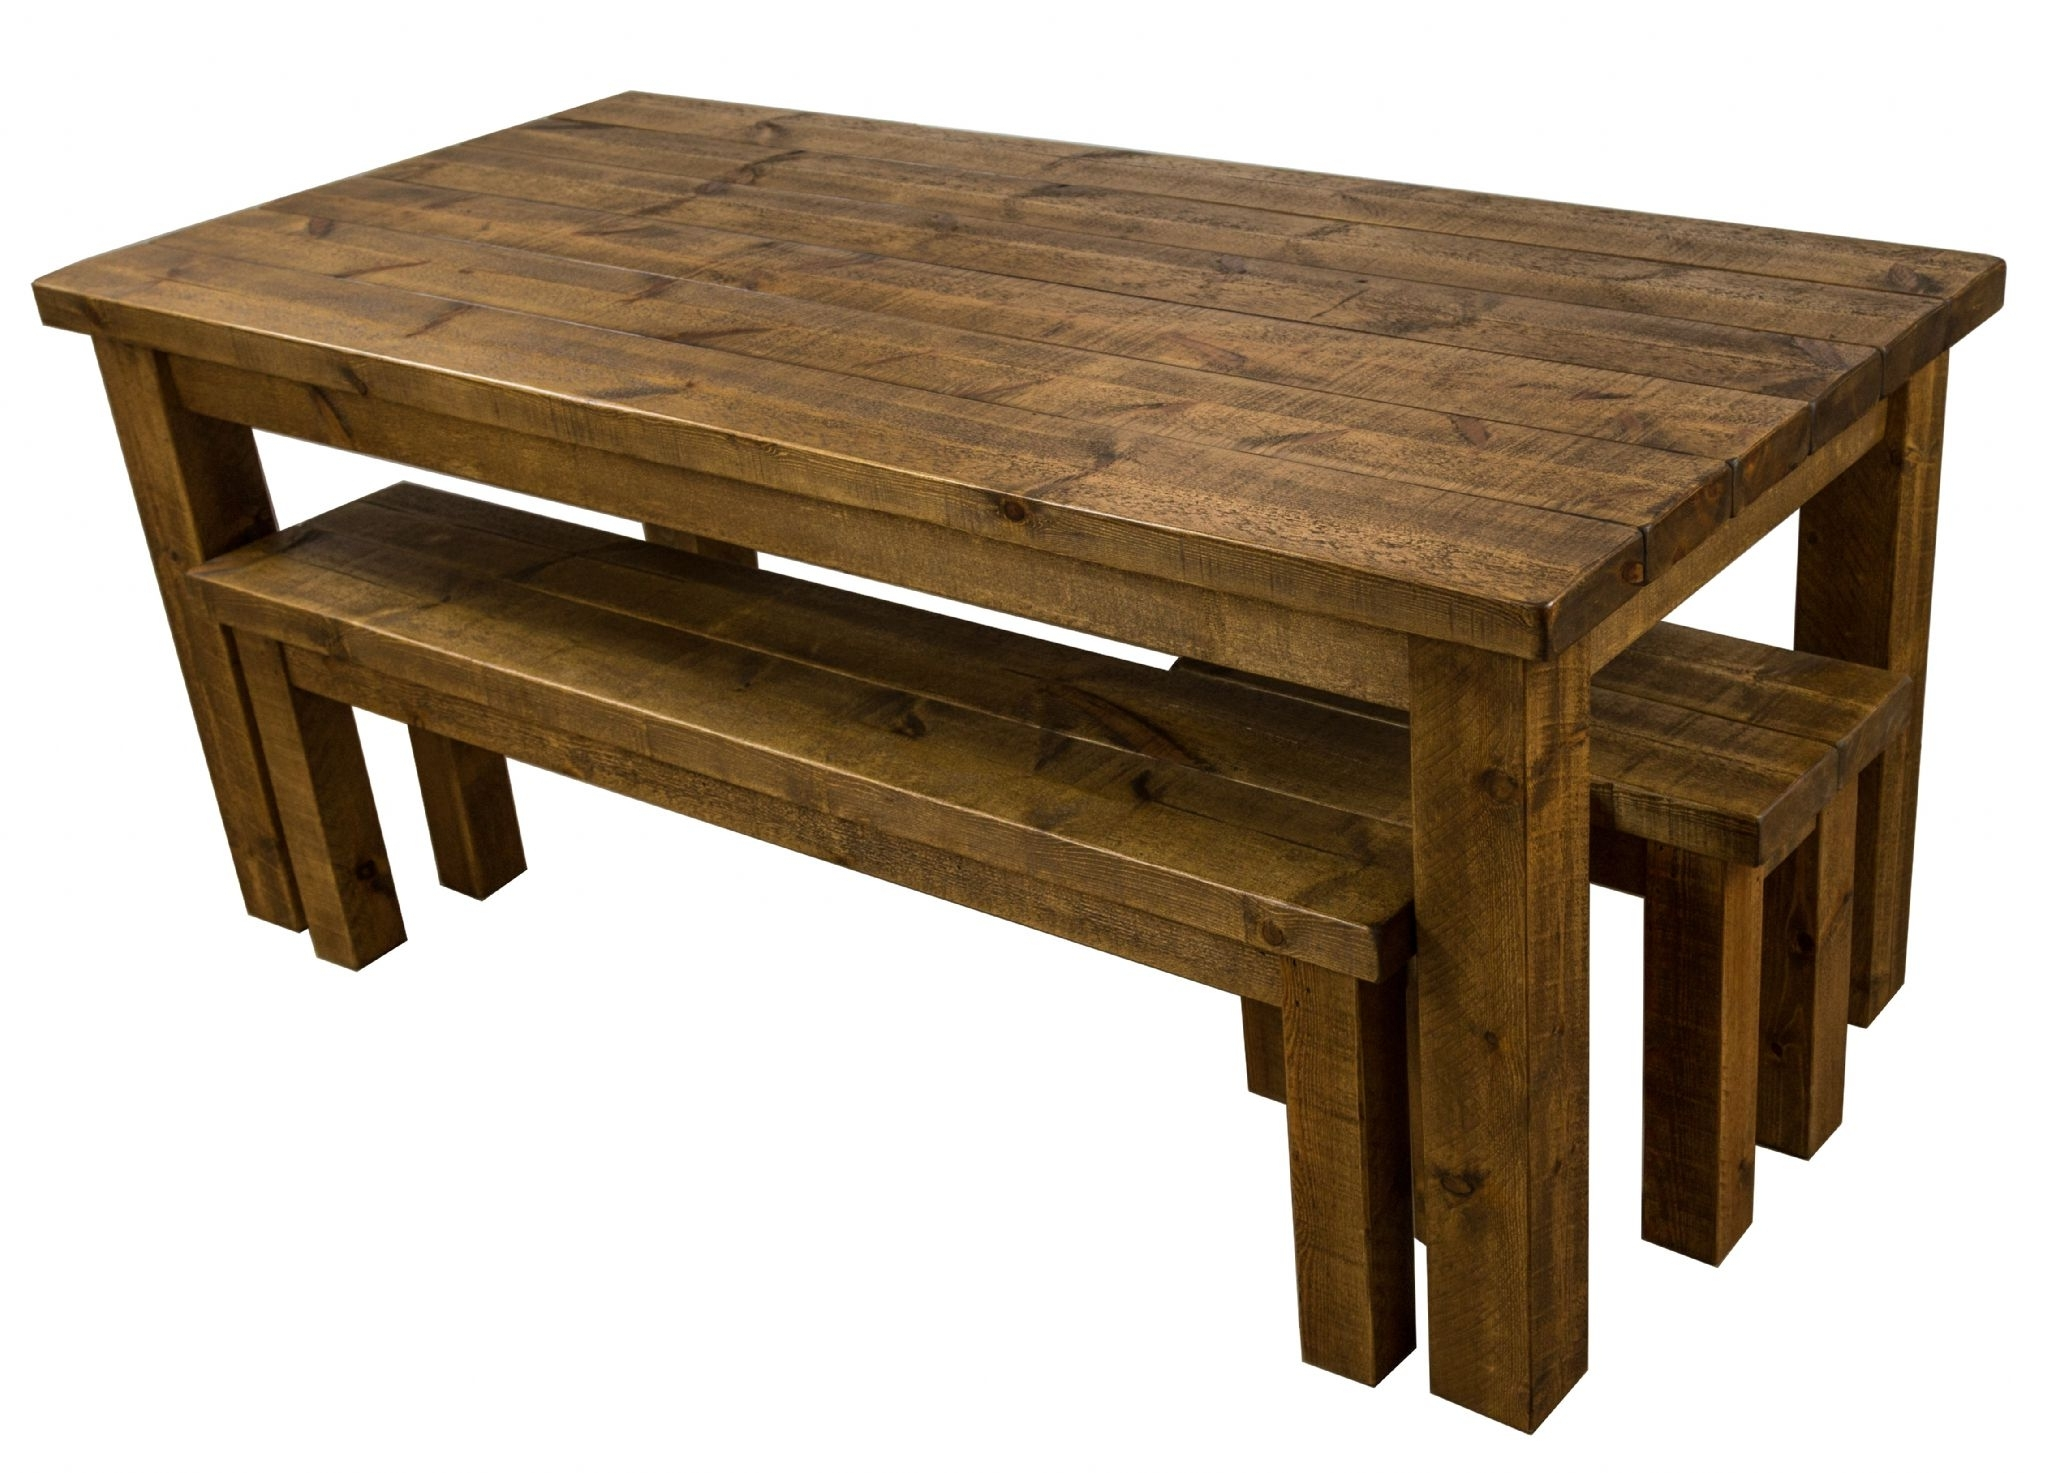 Well Known Dining Tables And 2 Benches Pertaining To Tortuga Rustic 7X3 Wooden Farmhouse Dining Table With 2 Benches (View 21 of 25)